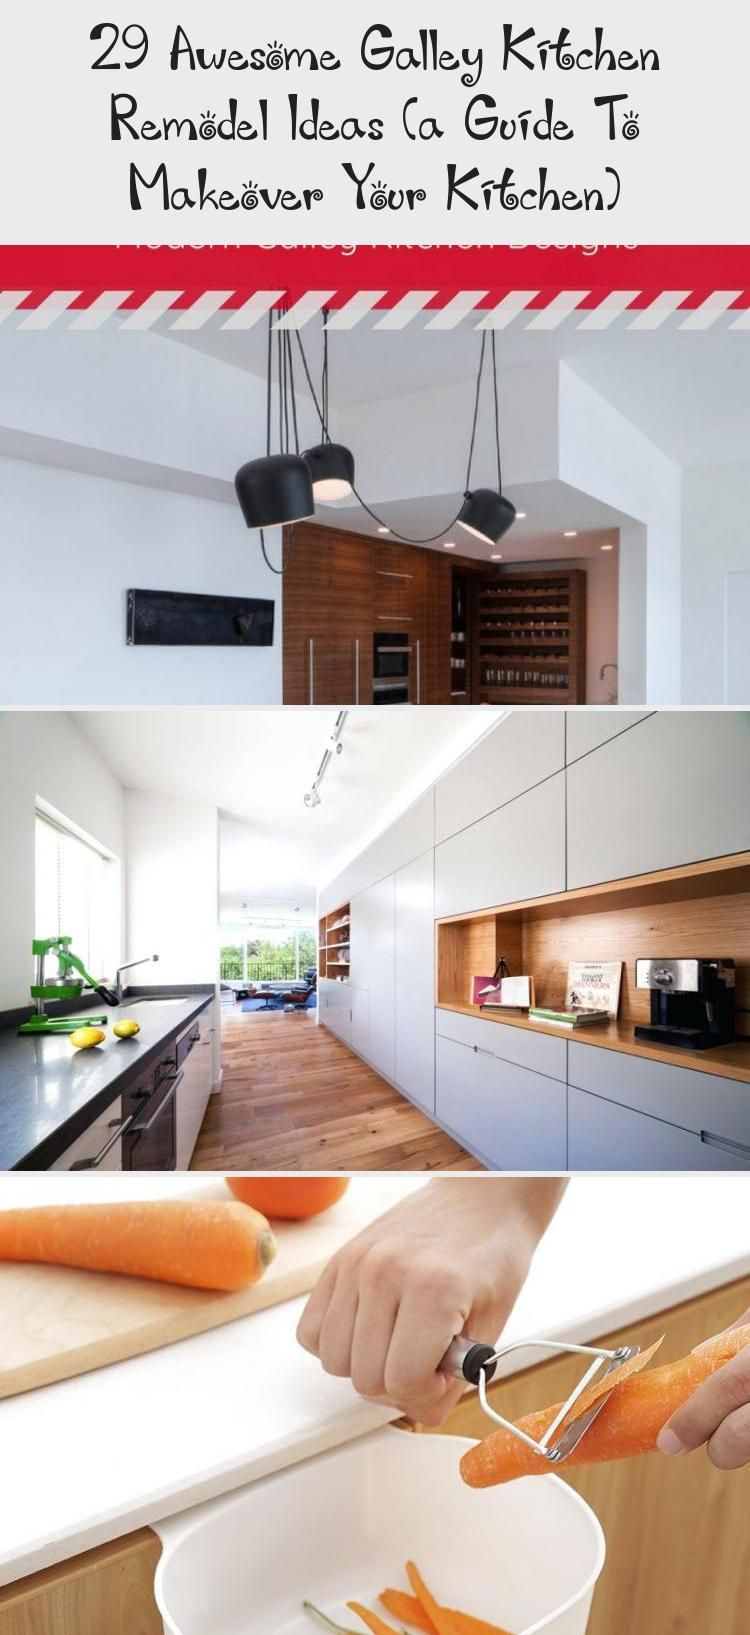 29 Awesome Galley Kitchen Remodel Ideas (A Guide to Makeover Your Kitchen) #onabudget #small #beforeandafter #fixerupper #ideas #narrow #layout #joannagaines #open #island #kitchendesignInspiration #Tinykitchendesign #kitchendesignWood #kitchendesignStorage #kitchendesign2019 #opengalleykitchen